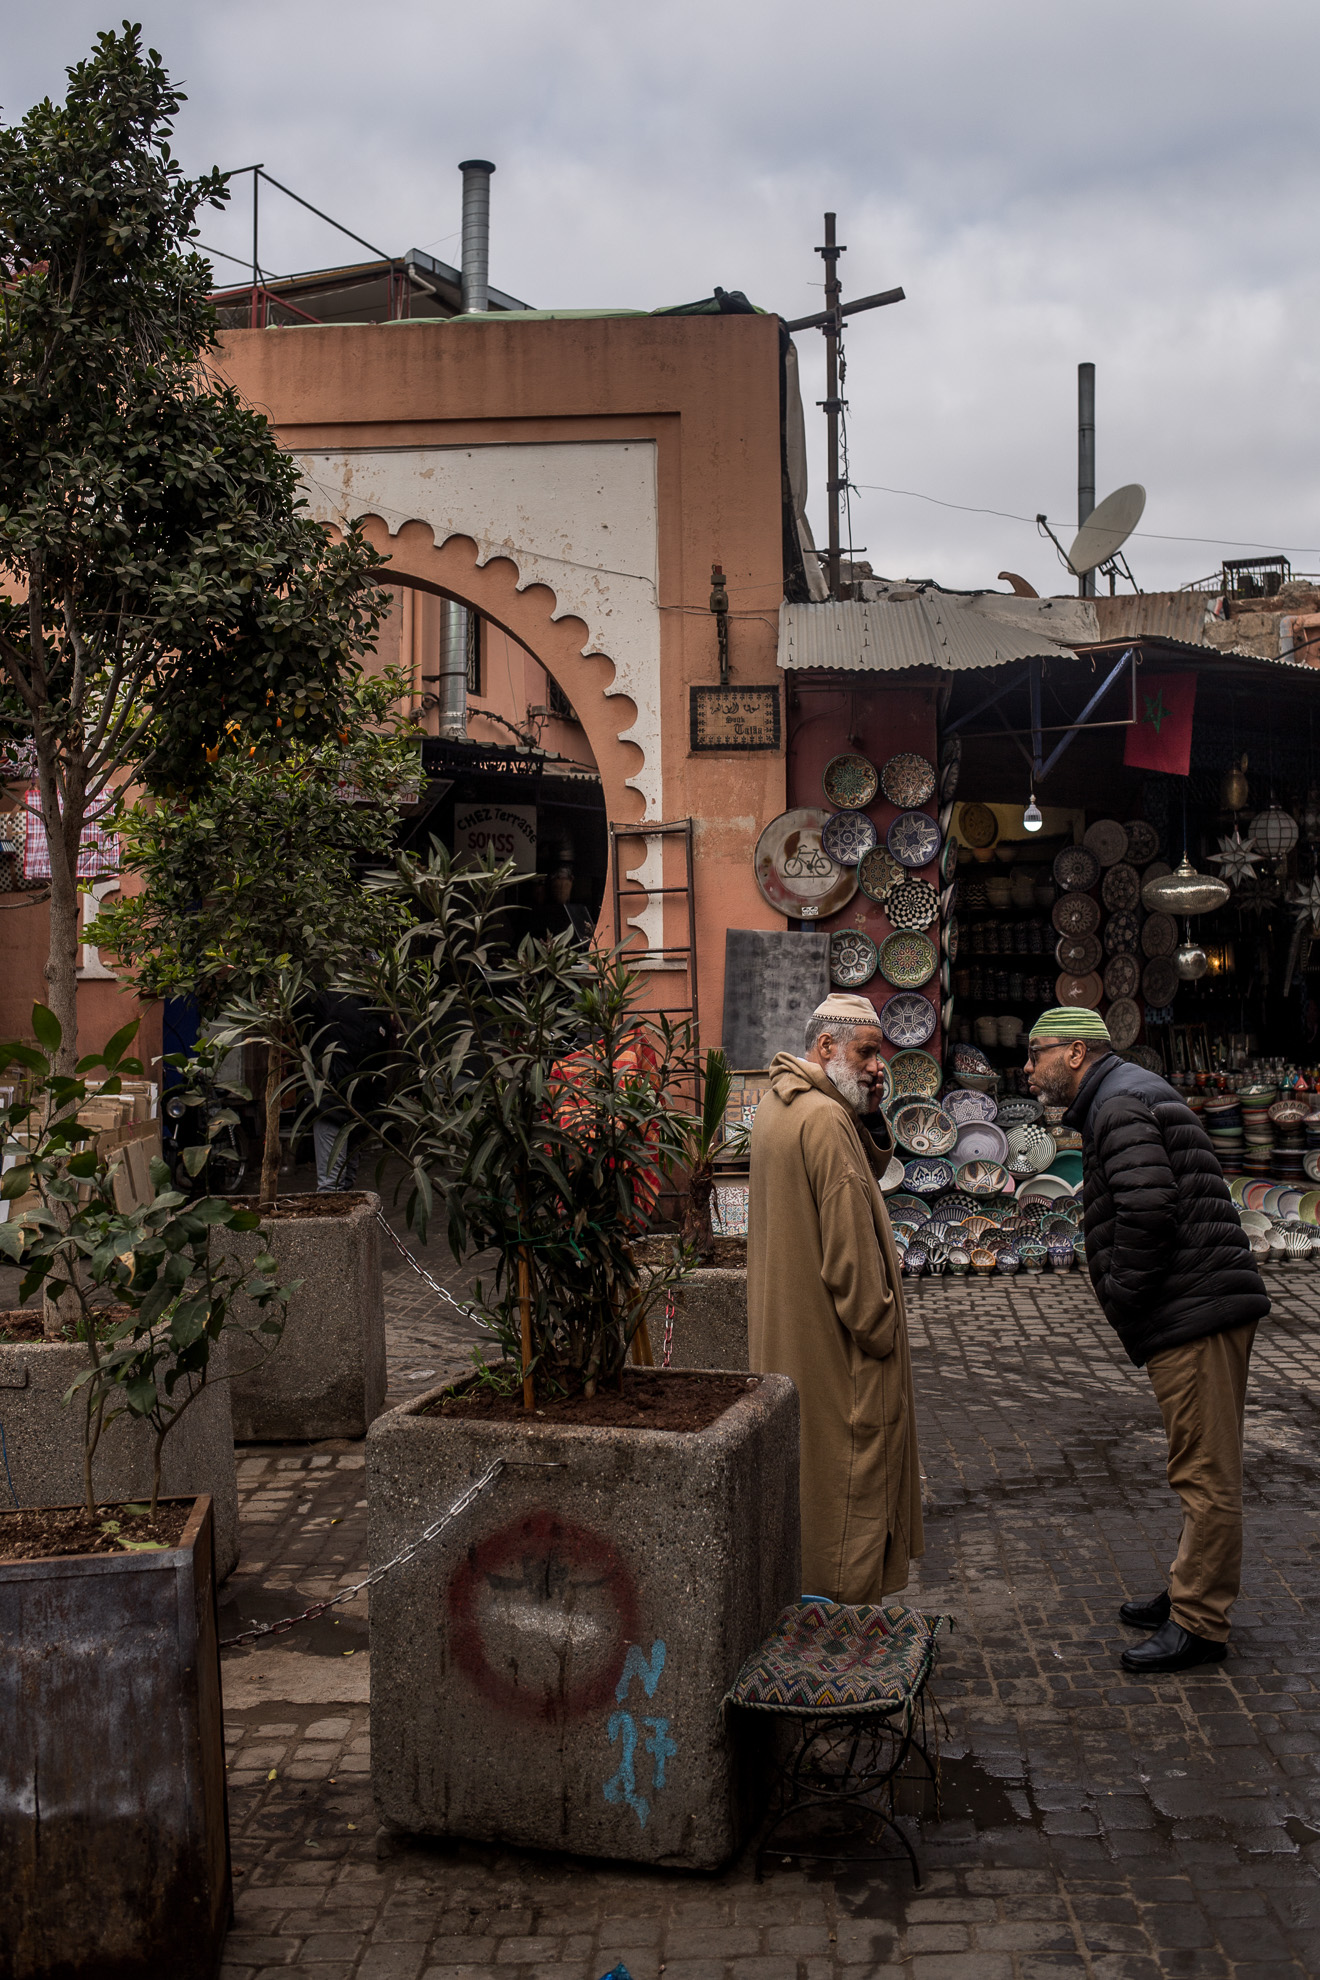 O Saillard Photographe Marrakech 2019-078.jpg